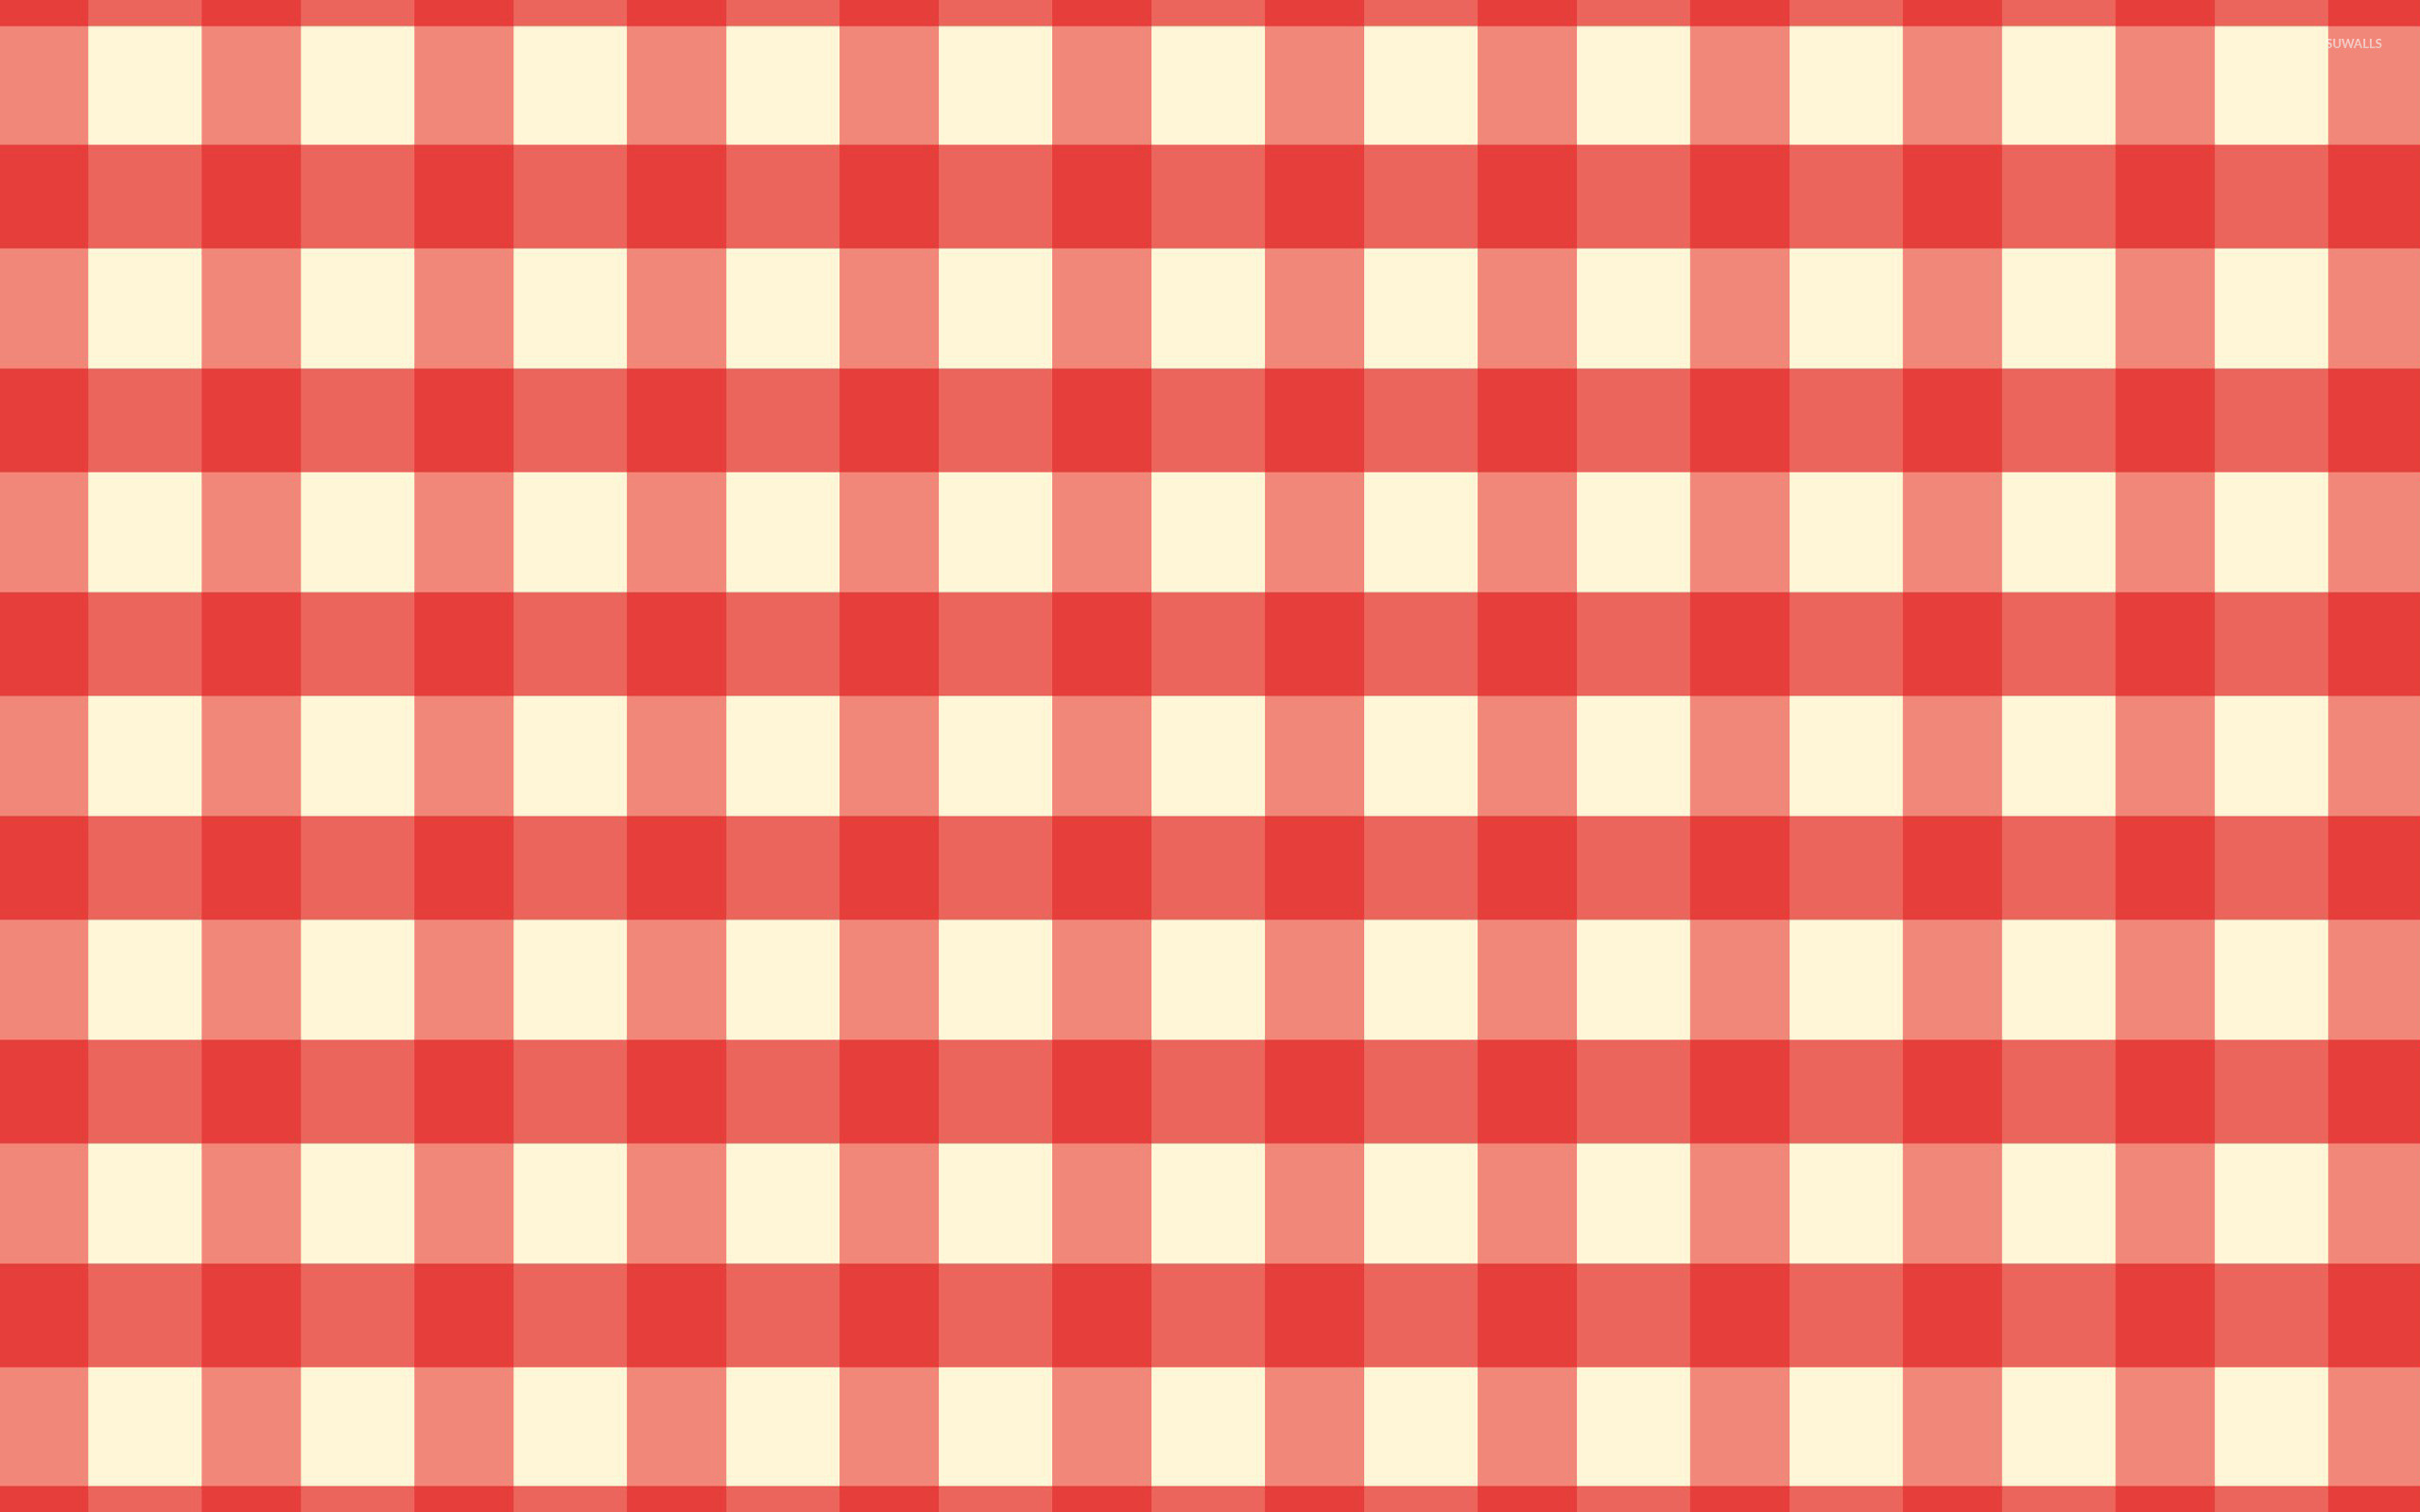 2560x1600 Red and white tablecloth wallpaper